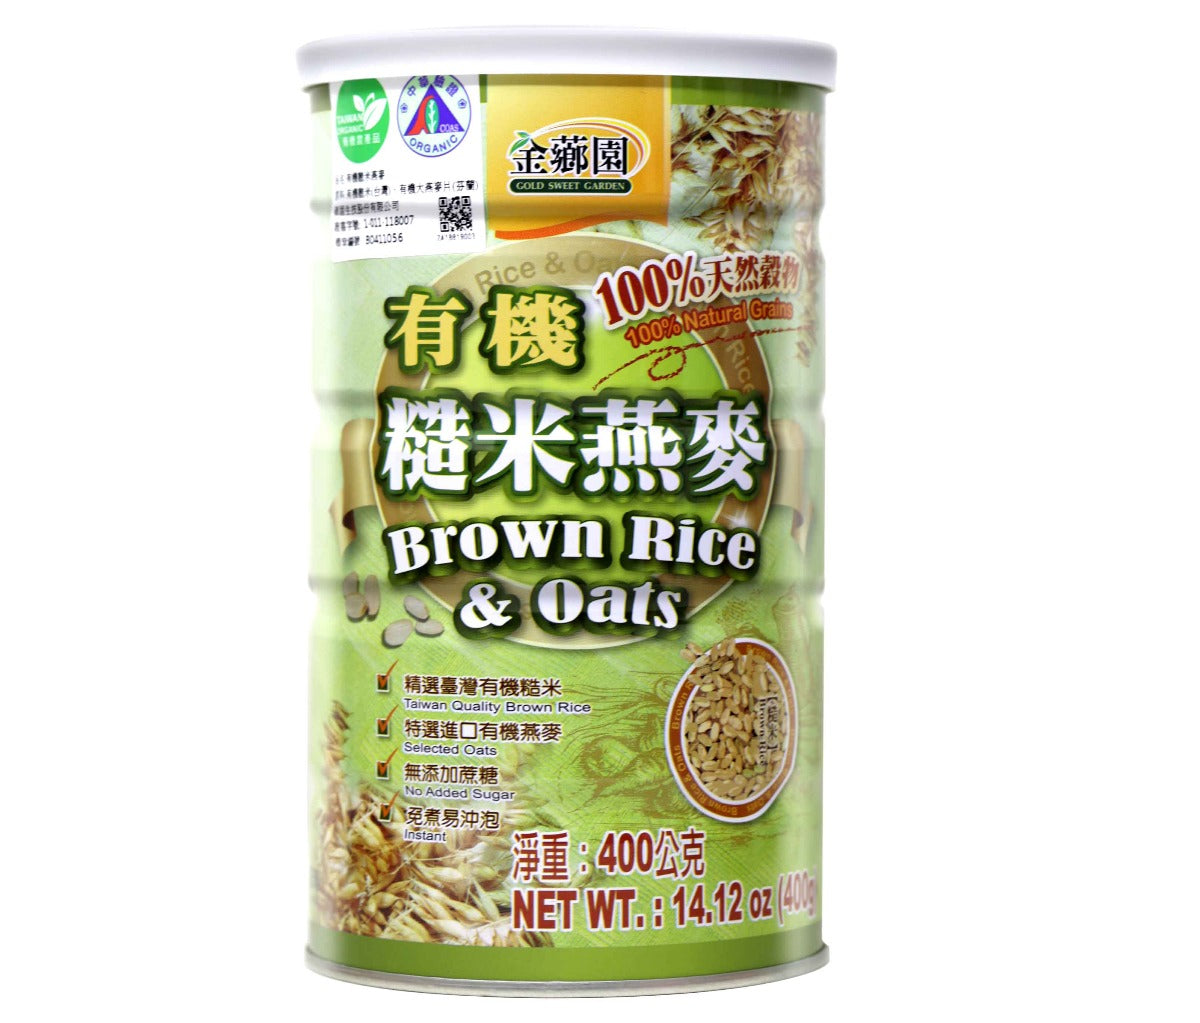 Gold Sweet Garden Instant Brown Rice and Oats 14.12 Oz (400 g) - 【金薌園】有機糙米燕麥金甜园糙米燕麦